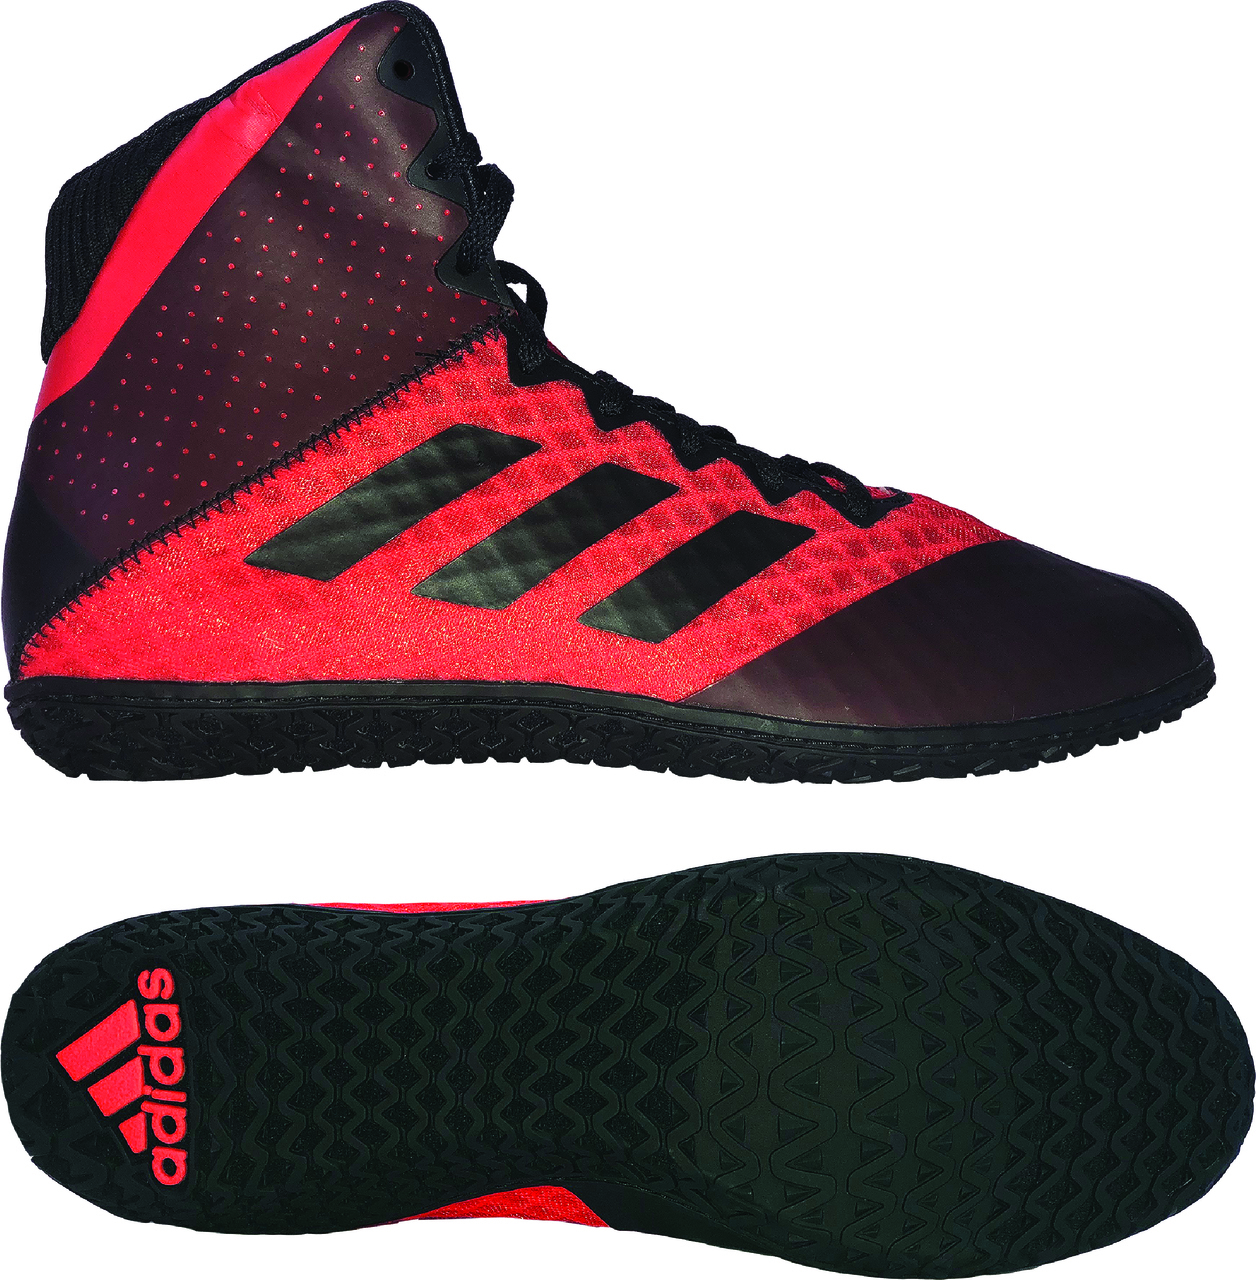 NEW!! adidas Mat Wizard 4 Wrestling Shoe, color: Red/Black